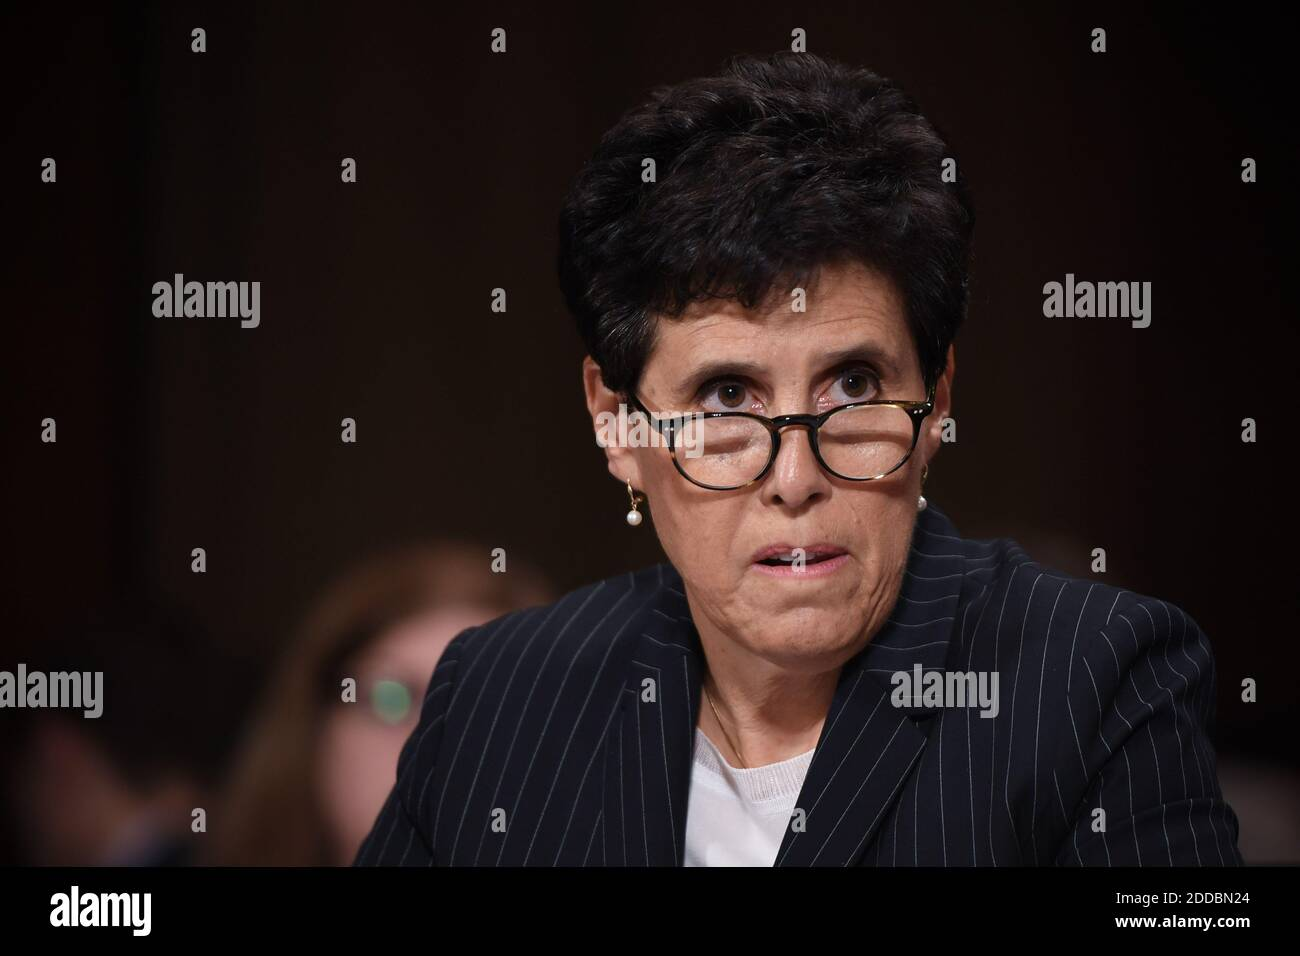 Christine Blasey Ford's attorney, Debra S Katz, is seen during his US Senate Judiciary Committee confirmation hearing on Capitol Hill in Washington, DC, September 27, 2018. Photo by Saul Loeb/Pool/ABACAPRESS.COM Stock Photo